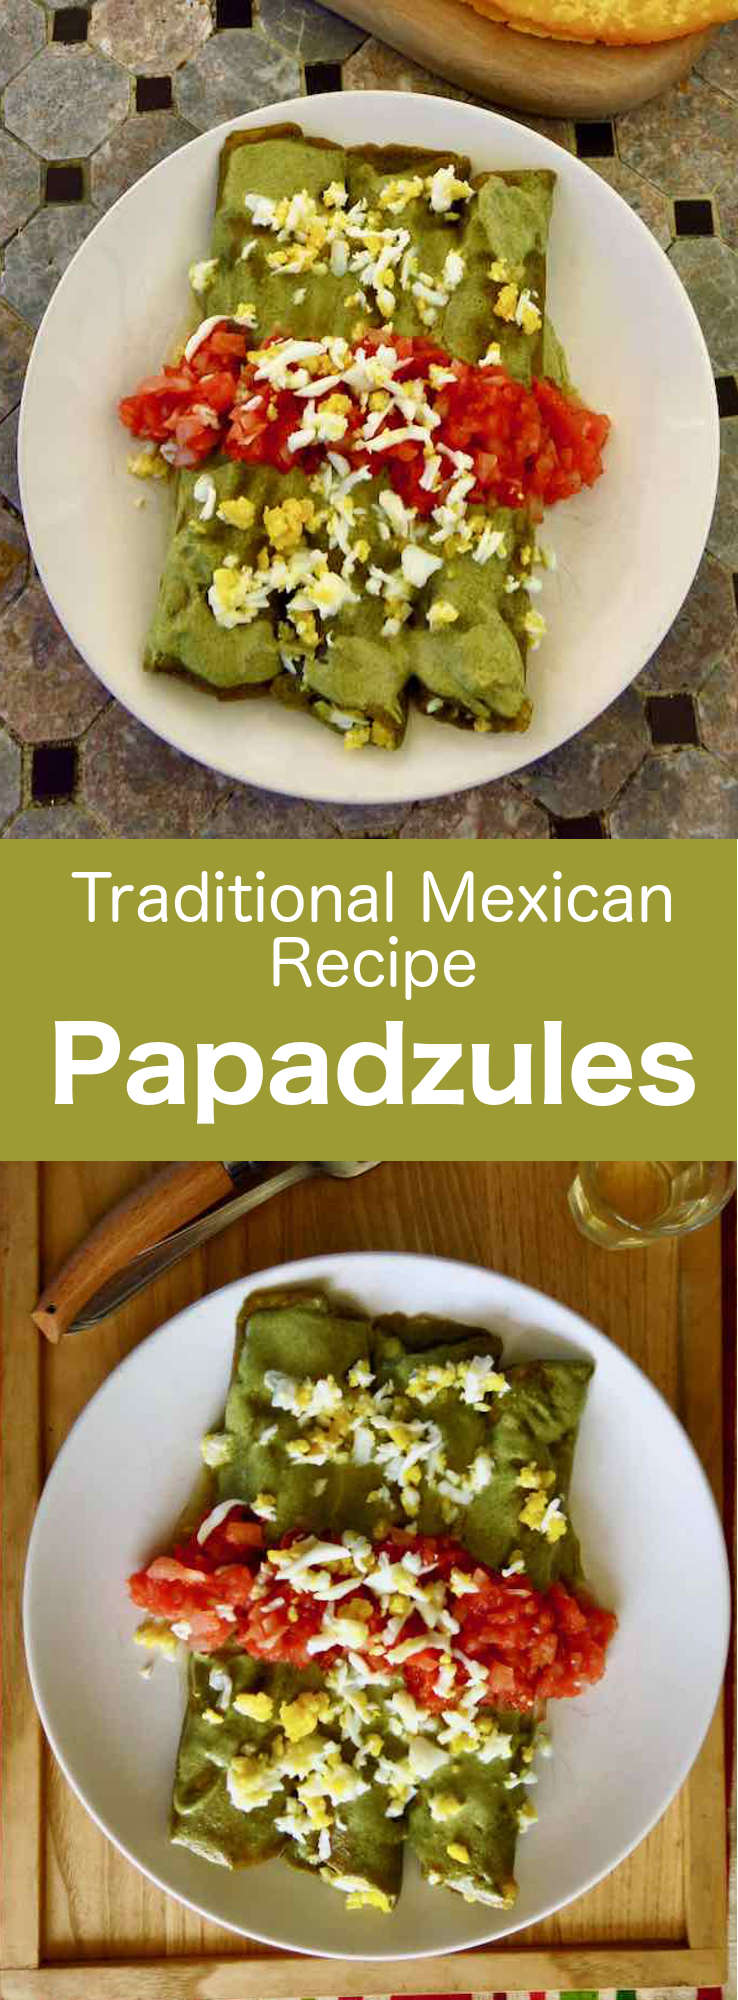 Papadzules are delicious fried corn tortillas, dipped in a roasted pumpkin seed sauce, topped with hard-boiled eggs and salsa chiltomate. #Mexican #MexicanFood #MexicanCuisine #MexicanRecipe #WorldCuisine #196flavors